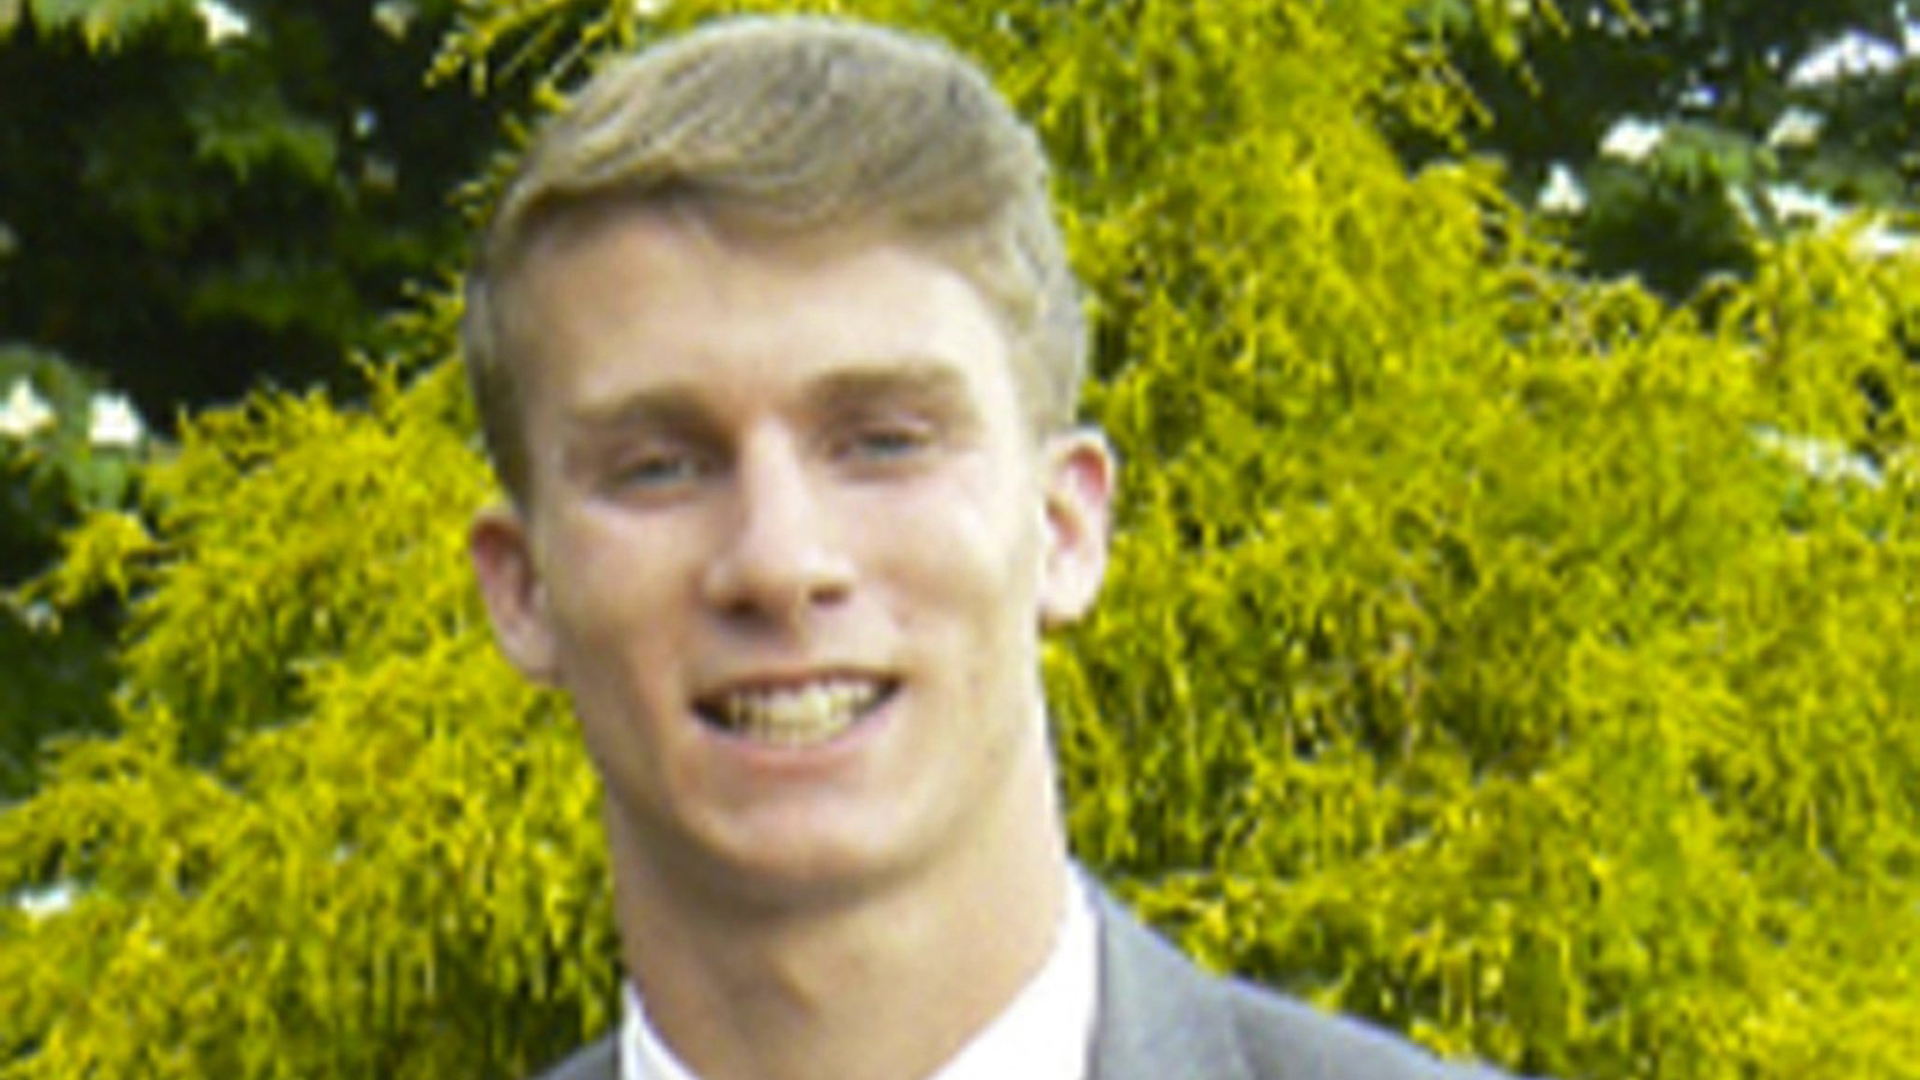 Authorities in Bermuda have confirmed the death of a 19-year-old American student who went missing over the weekend. (Credit: Bermuda Police Service/AP via CNN Wire)